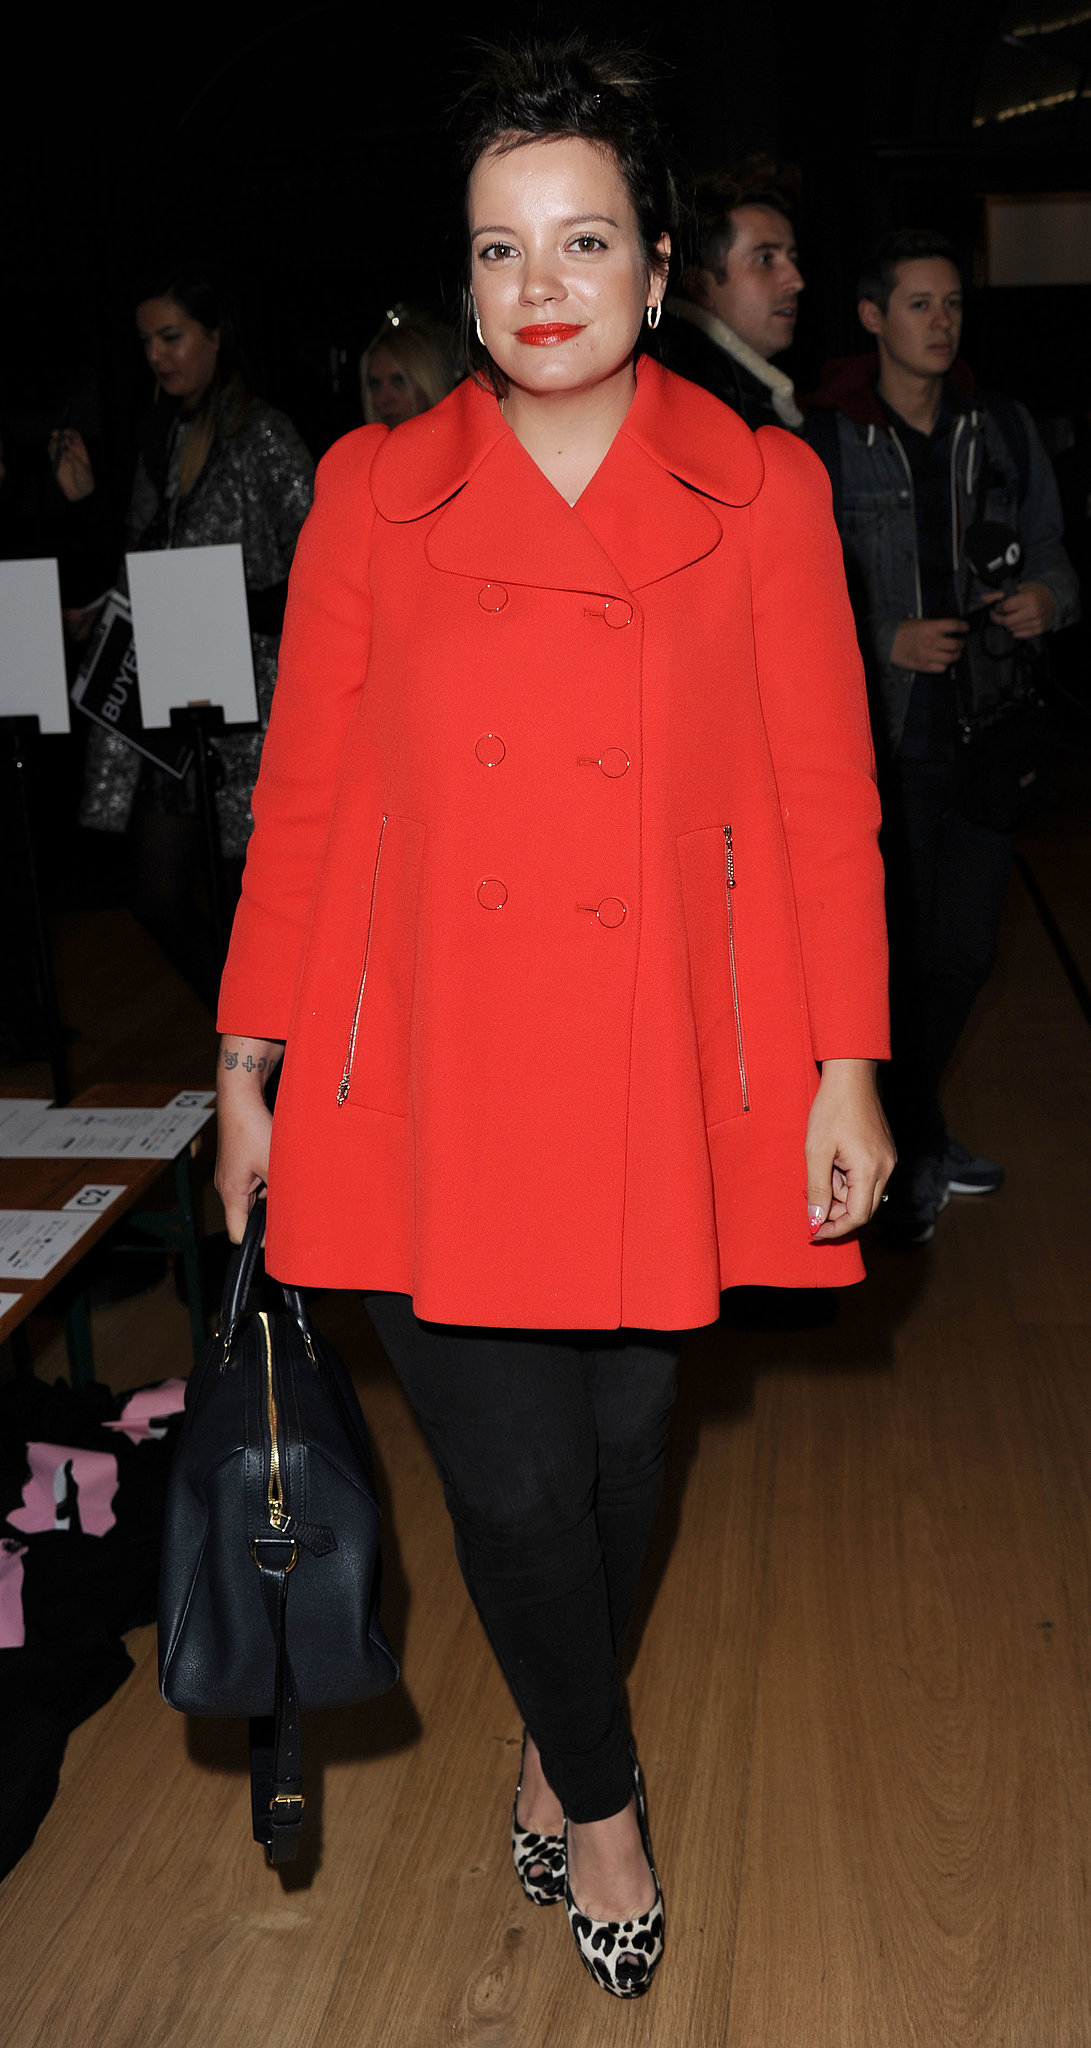 Lily Allen attended the Giles show during London Fashion Week.